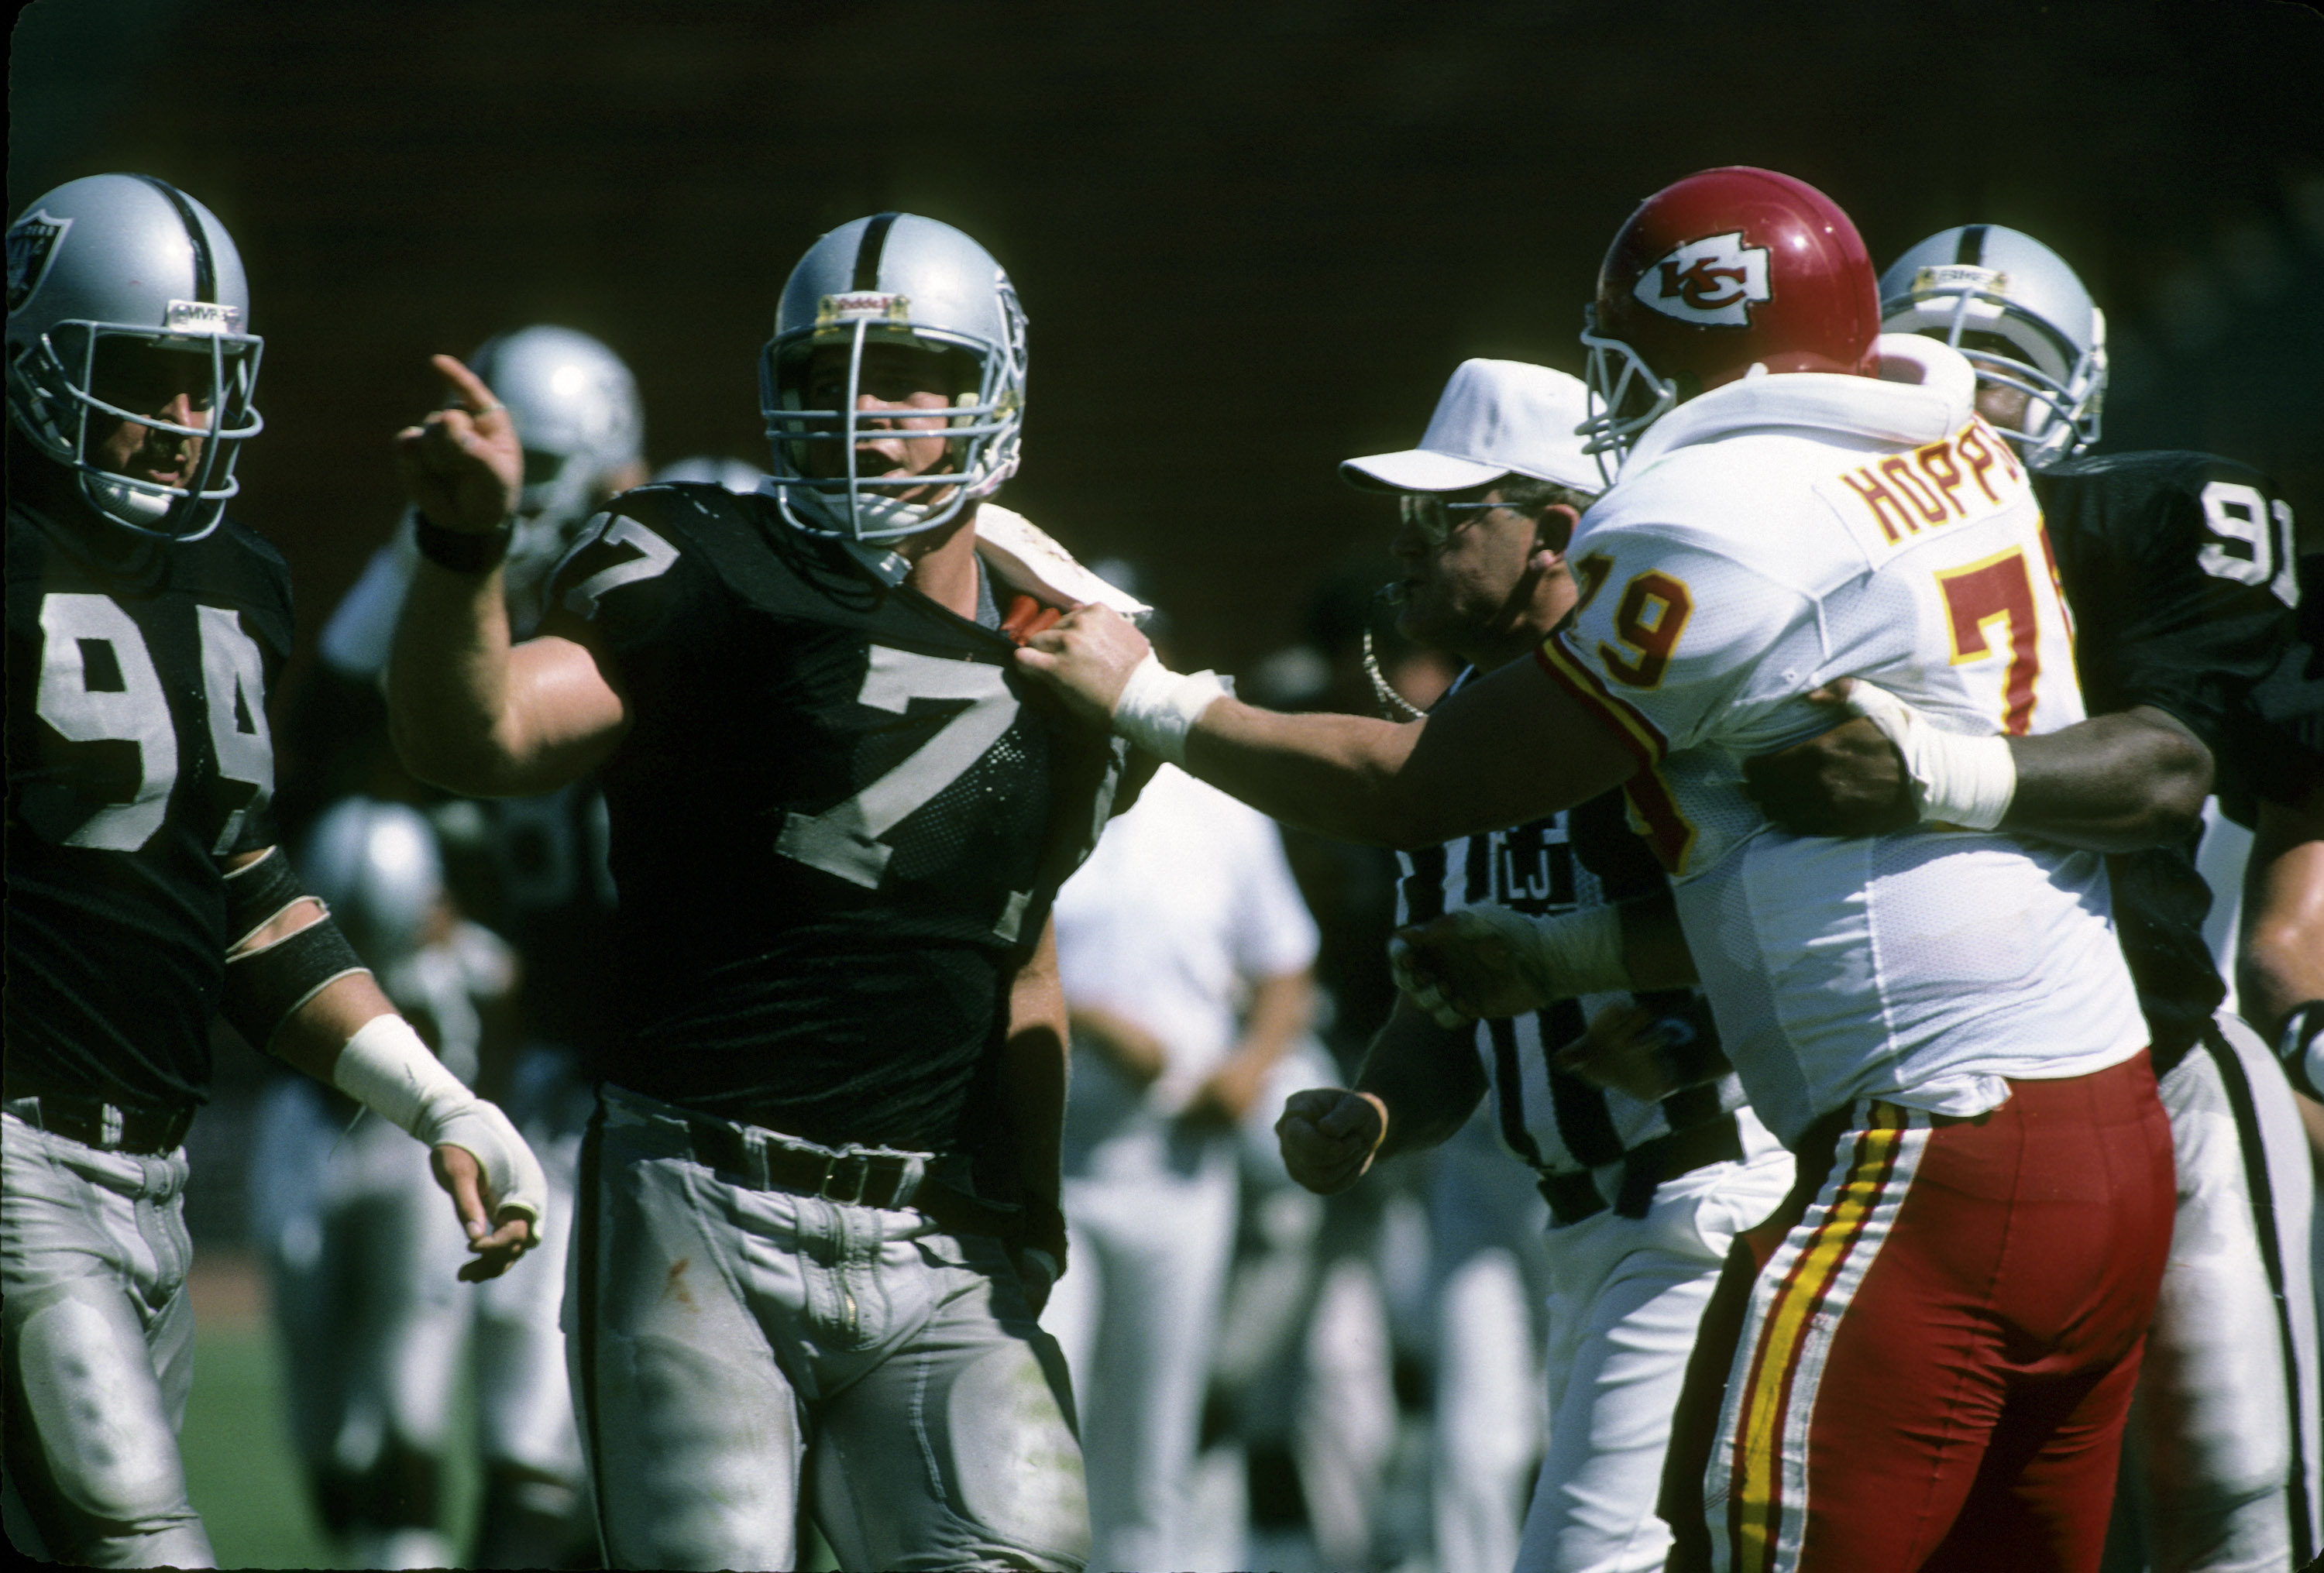 The Replacements by Raiders com - Raiders Making History